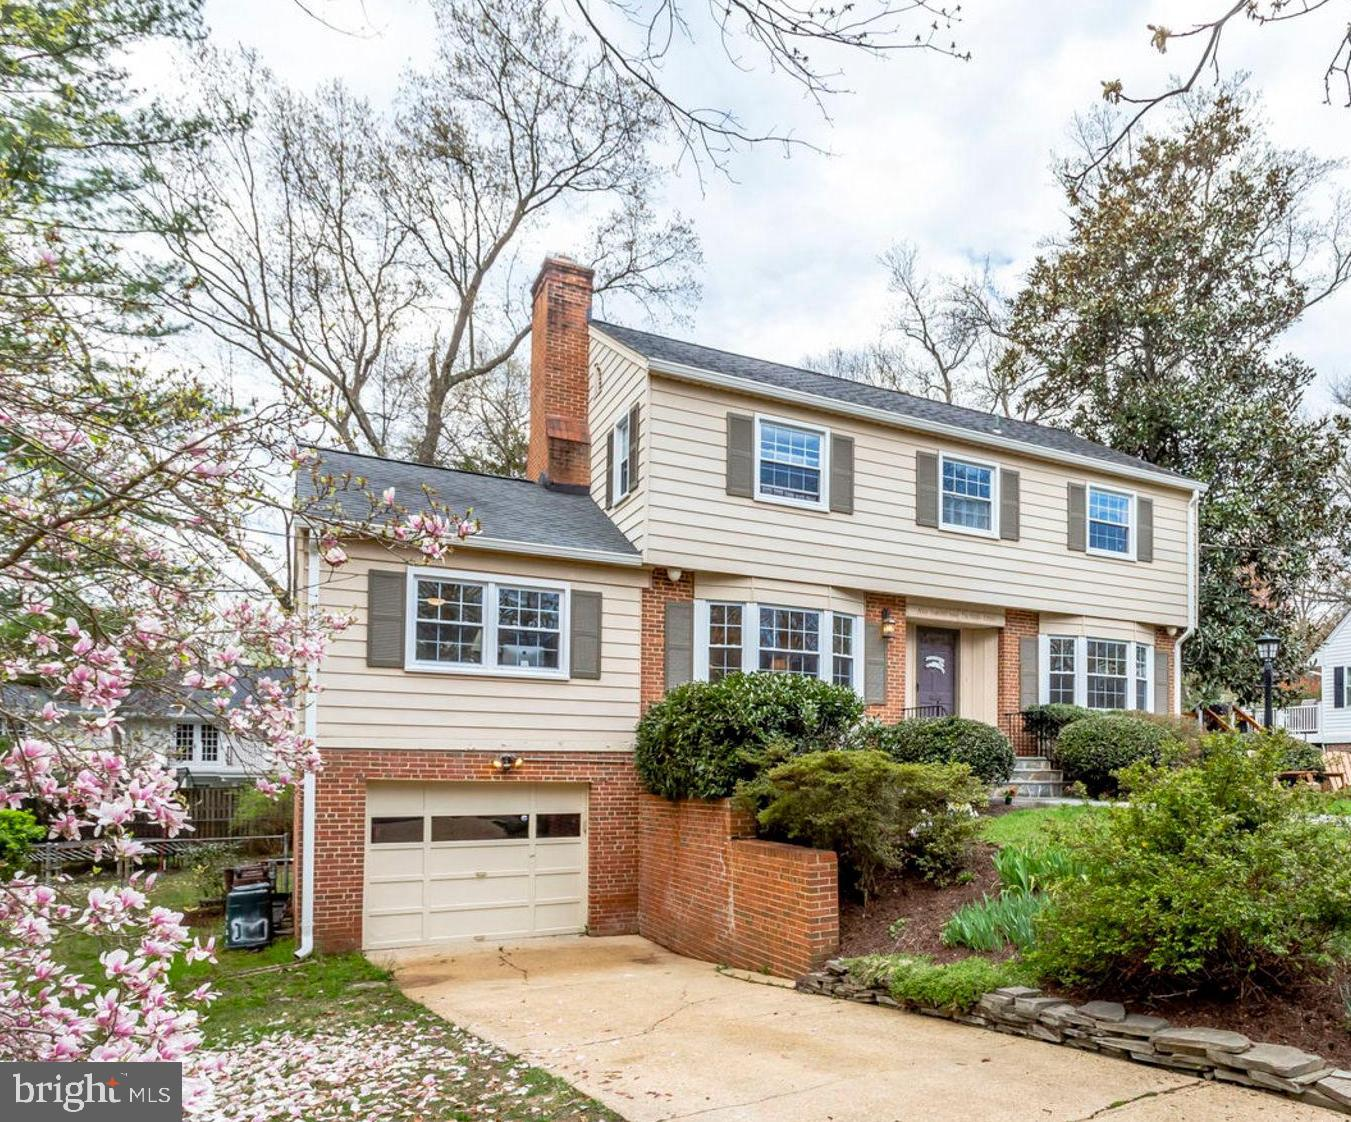 WAYNEWOOD!!! Rarely available beautifully updated center hall colonial home close to everything!! From the new flagstone path to the front door this bright 3 level home with hardwoods throughout is a must see. Gorgeously renovated kitchen with gas cooking. The deck (new 2018) off the kitchen built around an elegant magnolia tree offers view of beautiful sunsets. There are 4 bedrooms and 2 full baths upstairs. The home also features stairs to a full attic for easy and plentiful storage. The fully finished lower has a walkout and southern exposure that provides light all day long! With a full bathroom and walkout the 5th bedroom or office could easily be used as an au-pair suite. The fully fenced yard is huge with beautiful trees. You simply can't beat this location! Just around the corner is the GW Parkway bike path, turn right and in 3 miles you at Mount Vernon, the home of George Washington. Turn left and 6 miles down the road you are in Old Town. This community developed in the 50's and 60's is a throw back to simpler times. The kids sand box is always filled with toys! Fort Hunt Park is just a few blocks away for great picnics and gatherings. Fort Hunt Athletic Association is a thriving organization for all youth sports which often practices at Waynewood Park and other local fields. The Waynewood Rec Center recently renovated their pool, and the clubhouse is in the final stages of a complete redo, as are the basketball courts. You've also got 3 full tennis courts with lights. Whether you drive or take advantage of the express bus to the metro, this a great location for commuting to DC, Tysons, Fort Belvoir, Pentagon and of course the new Amazon location in Crystal City! Don't wait to see this beautiful home! Open houses April 13th & 14th, 2-4pm.